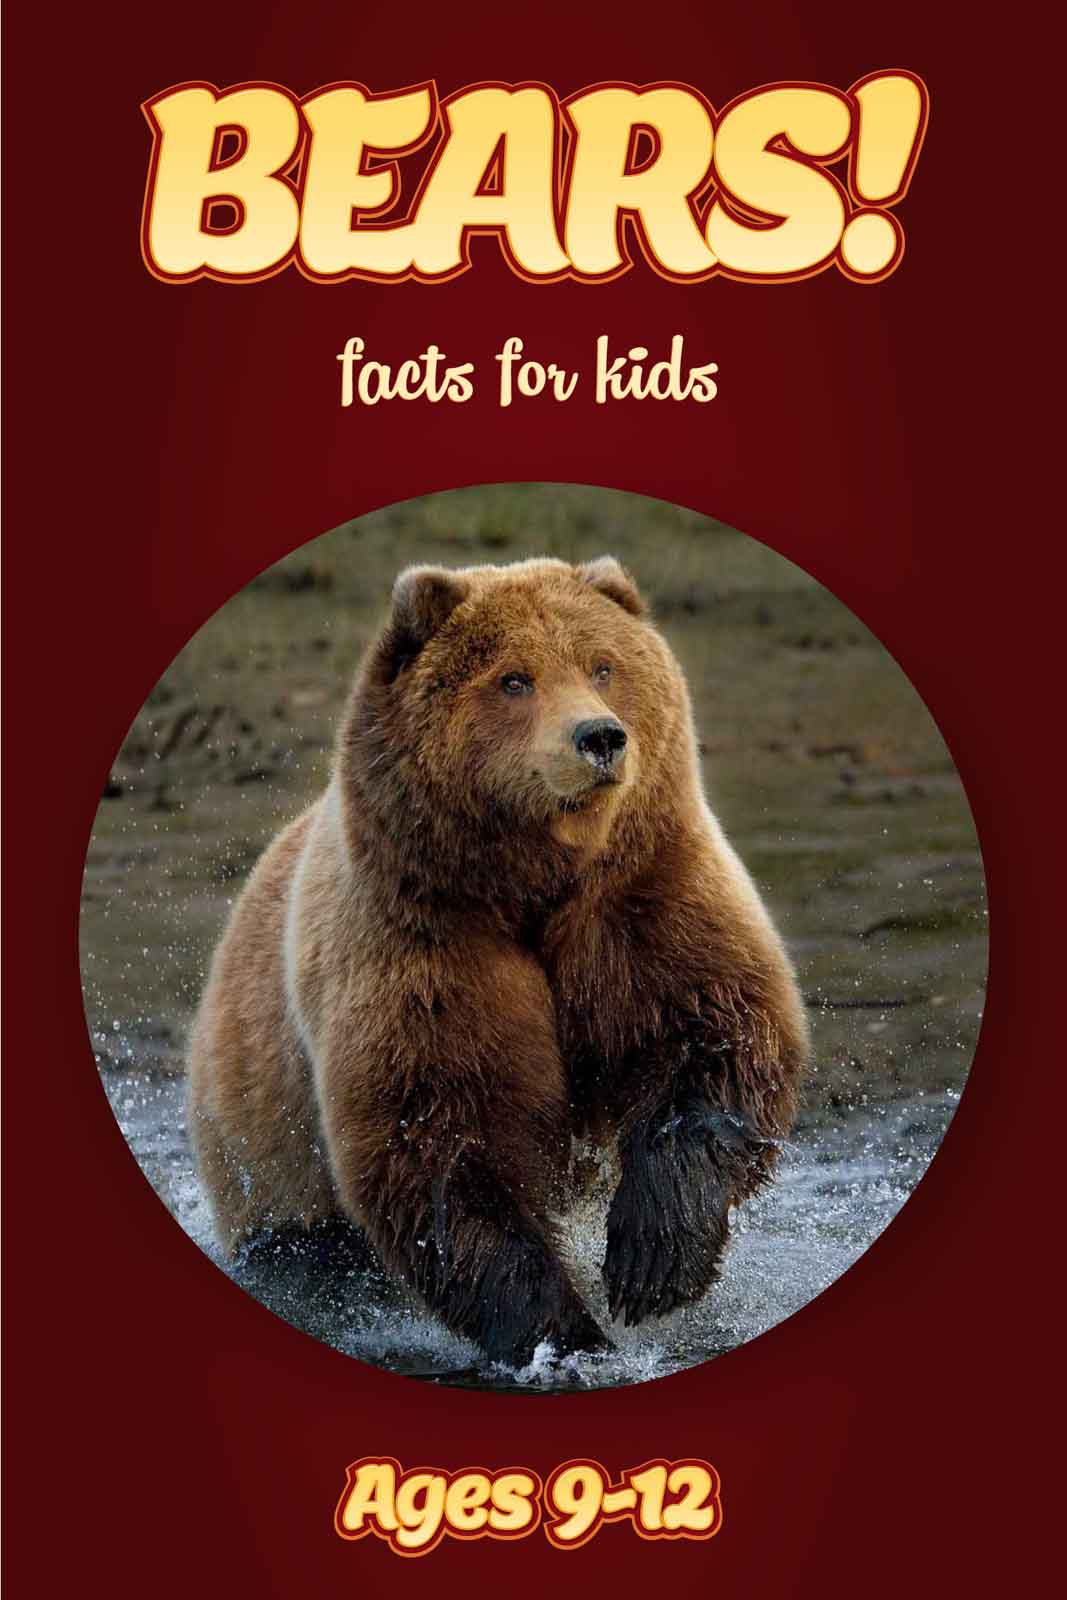 bear facts for kids kids nonfiction book clouducated ages 9 12